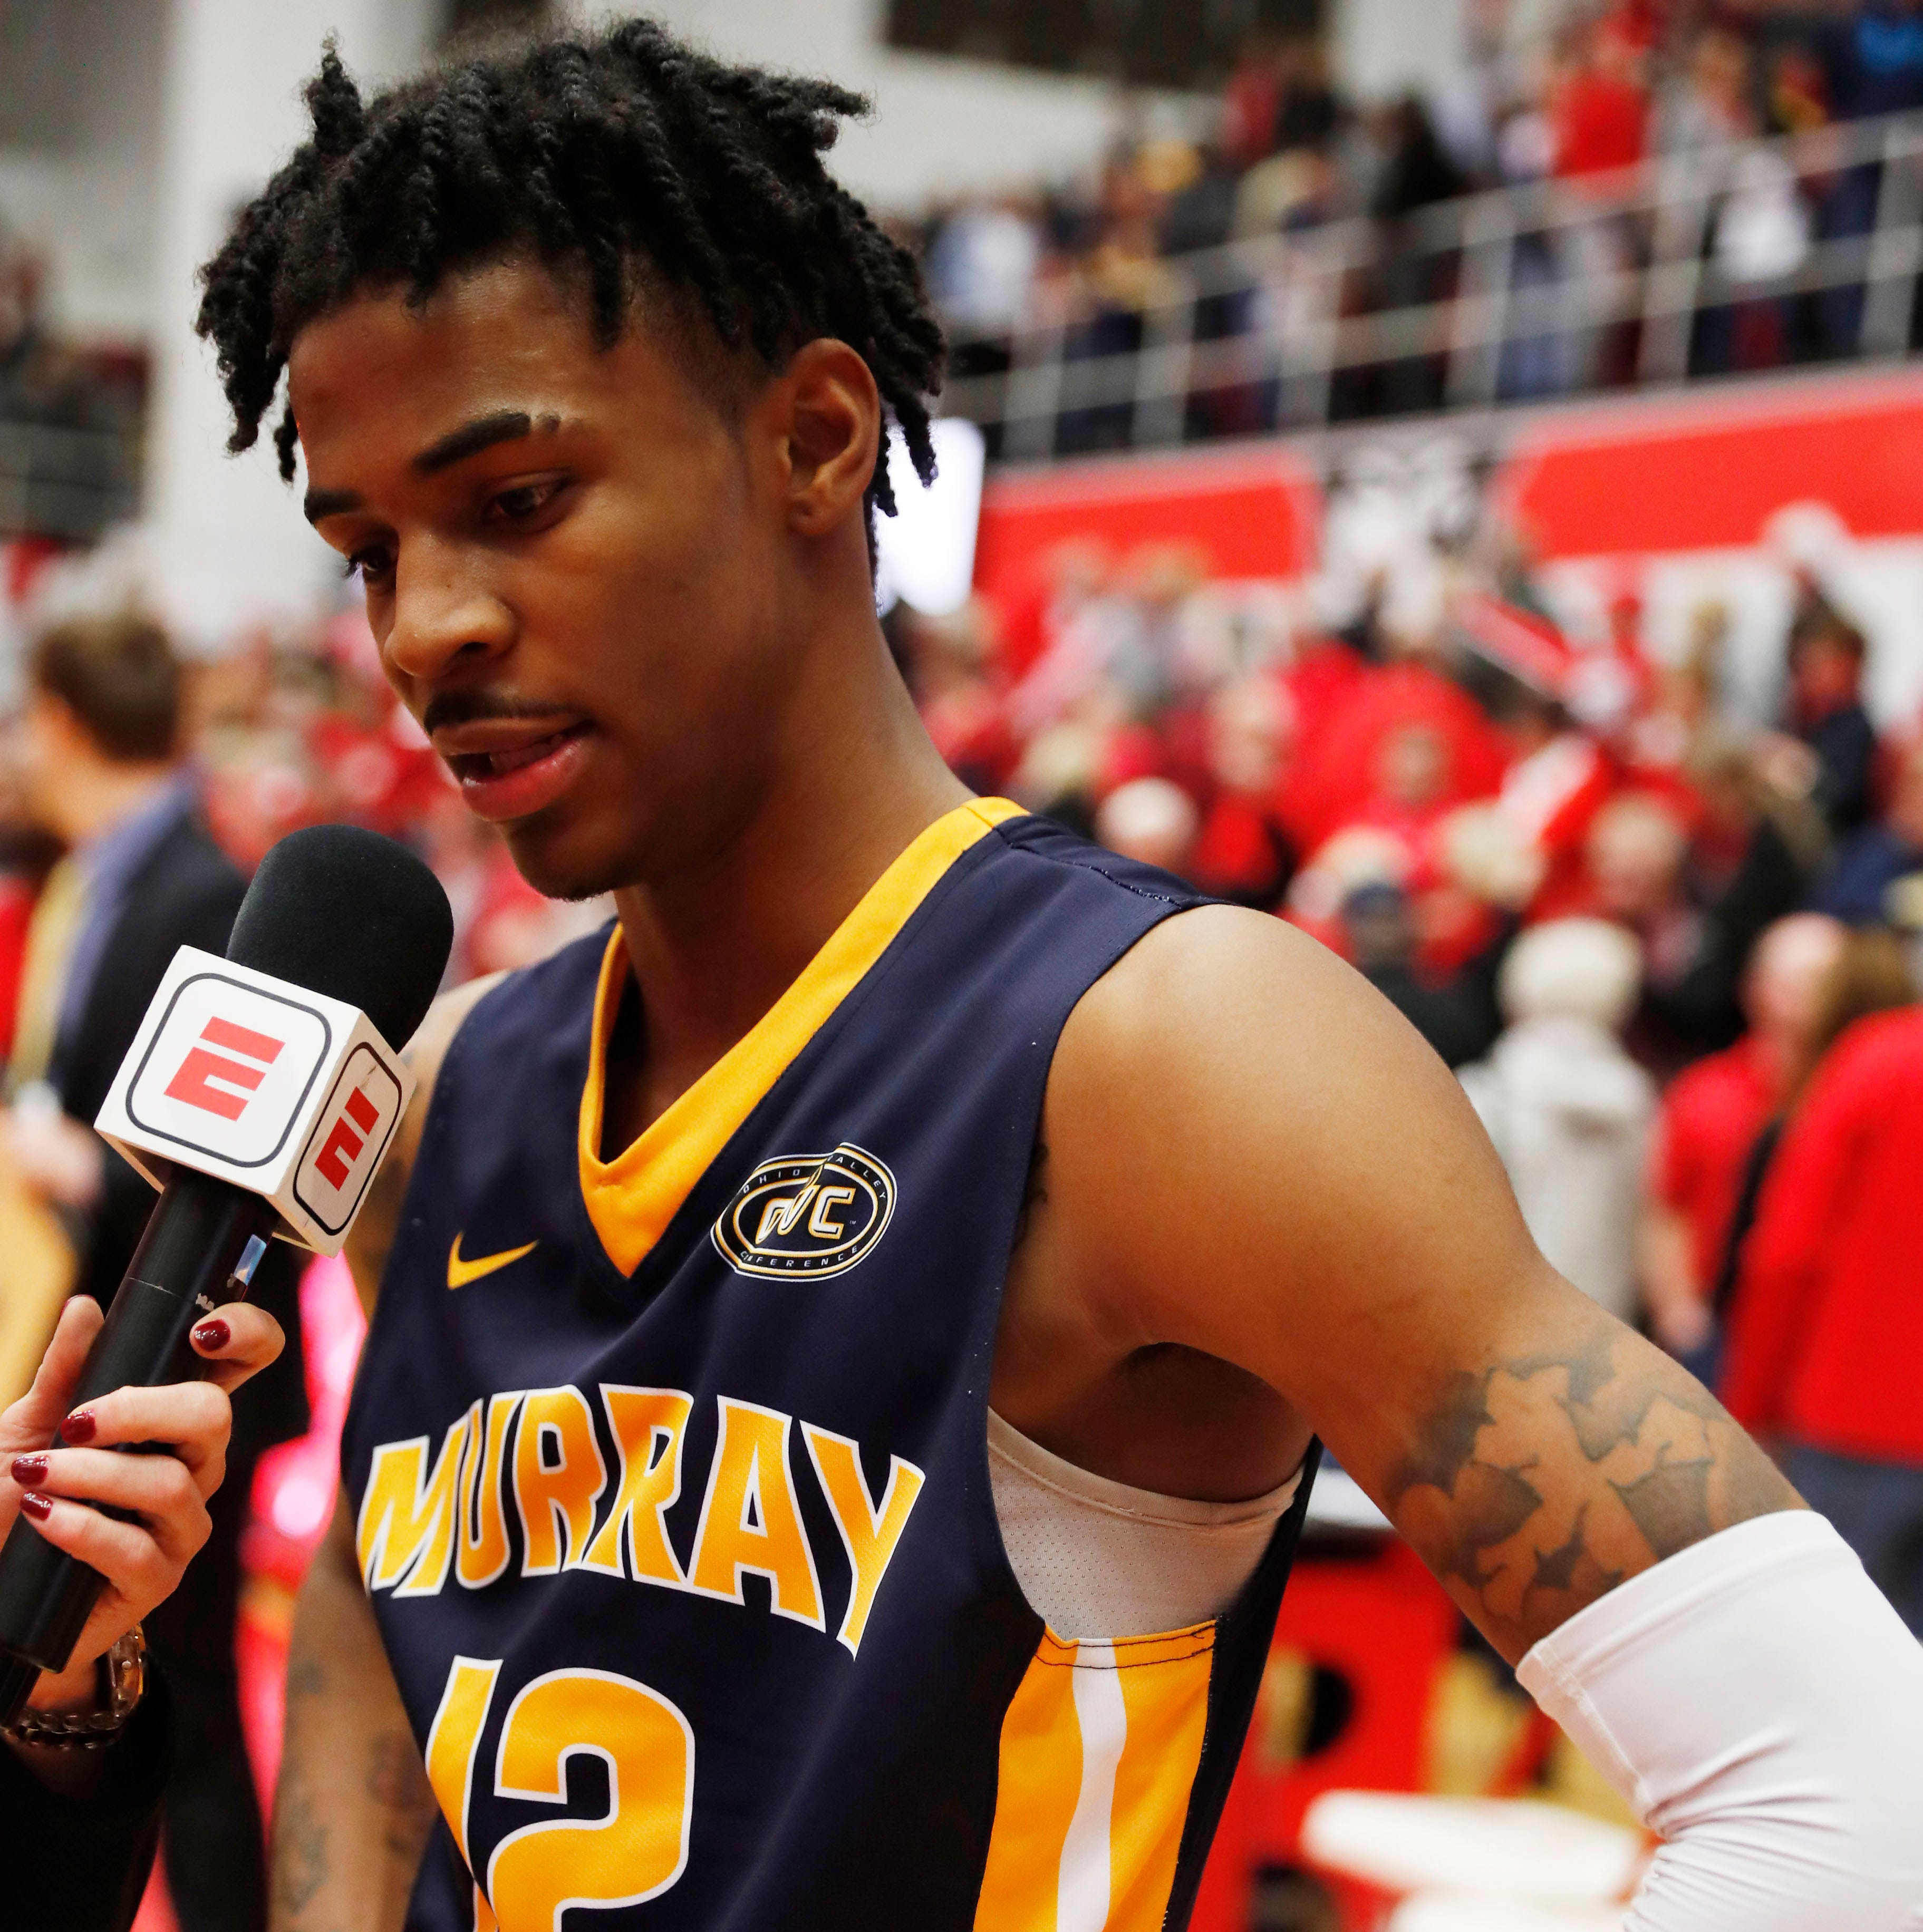 NBA mock draft: Ja Morant may be Phoenix Suns' pick in 2019 NBA draft